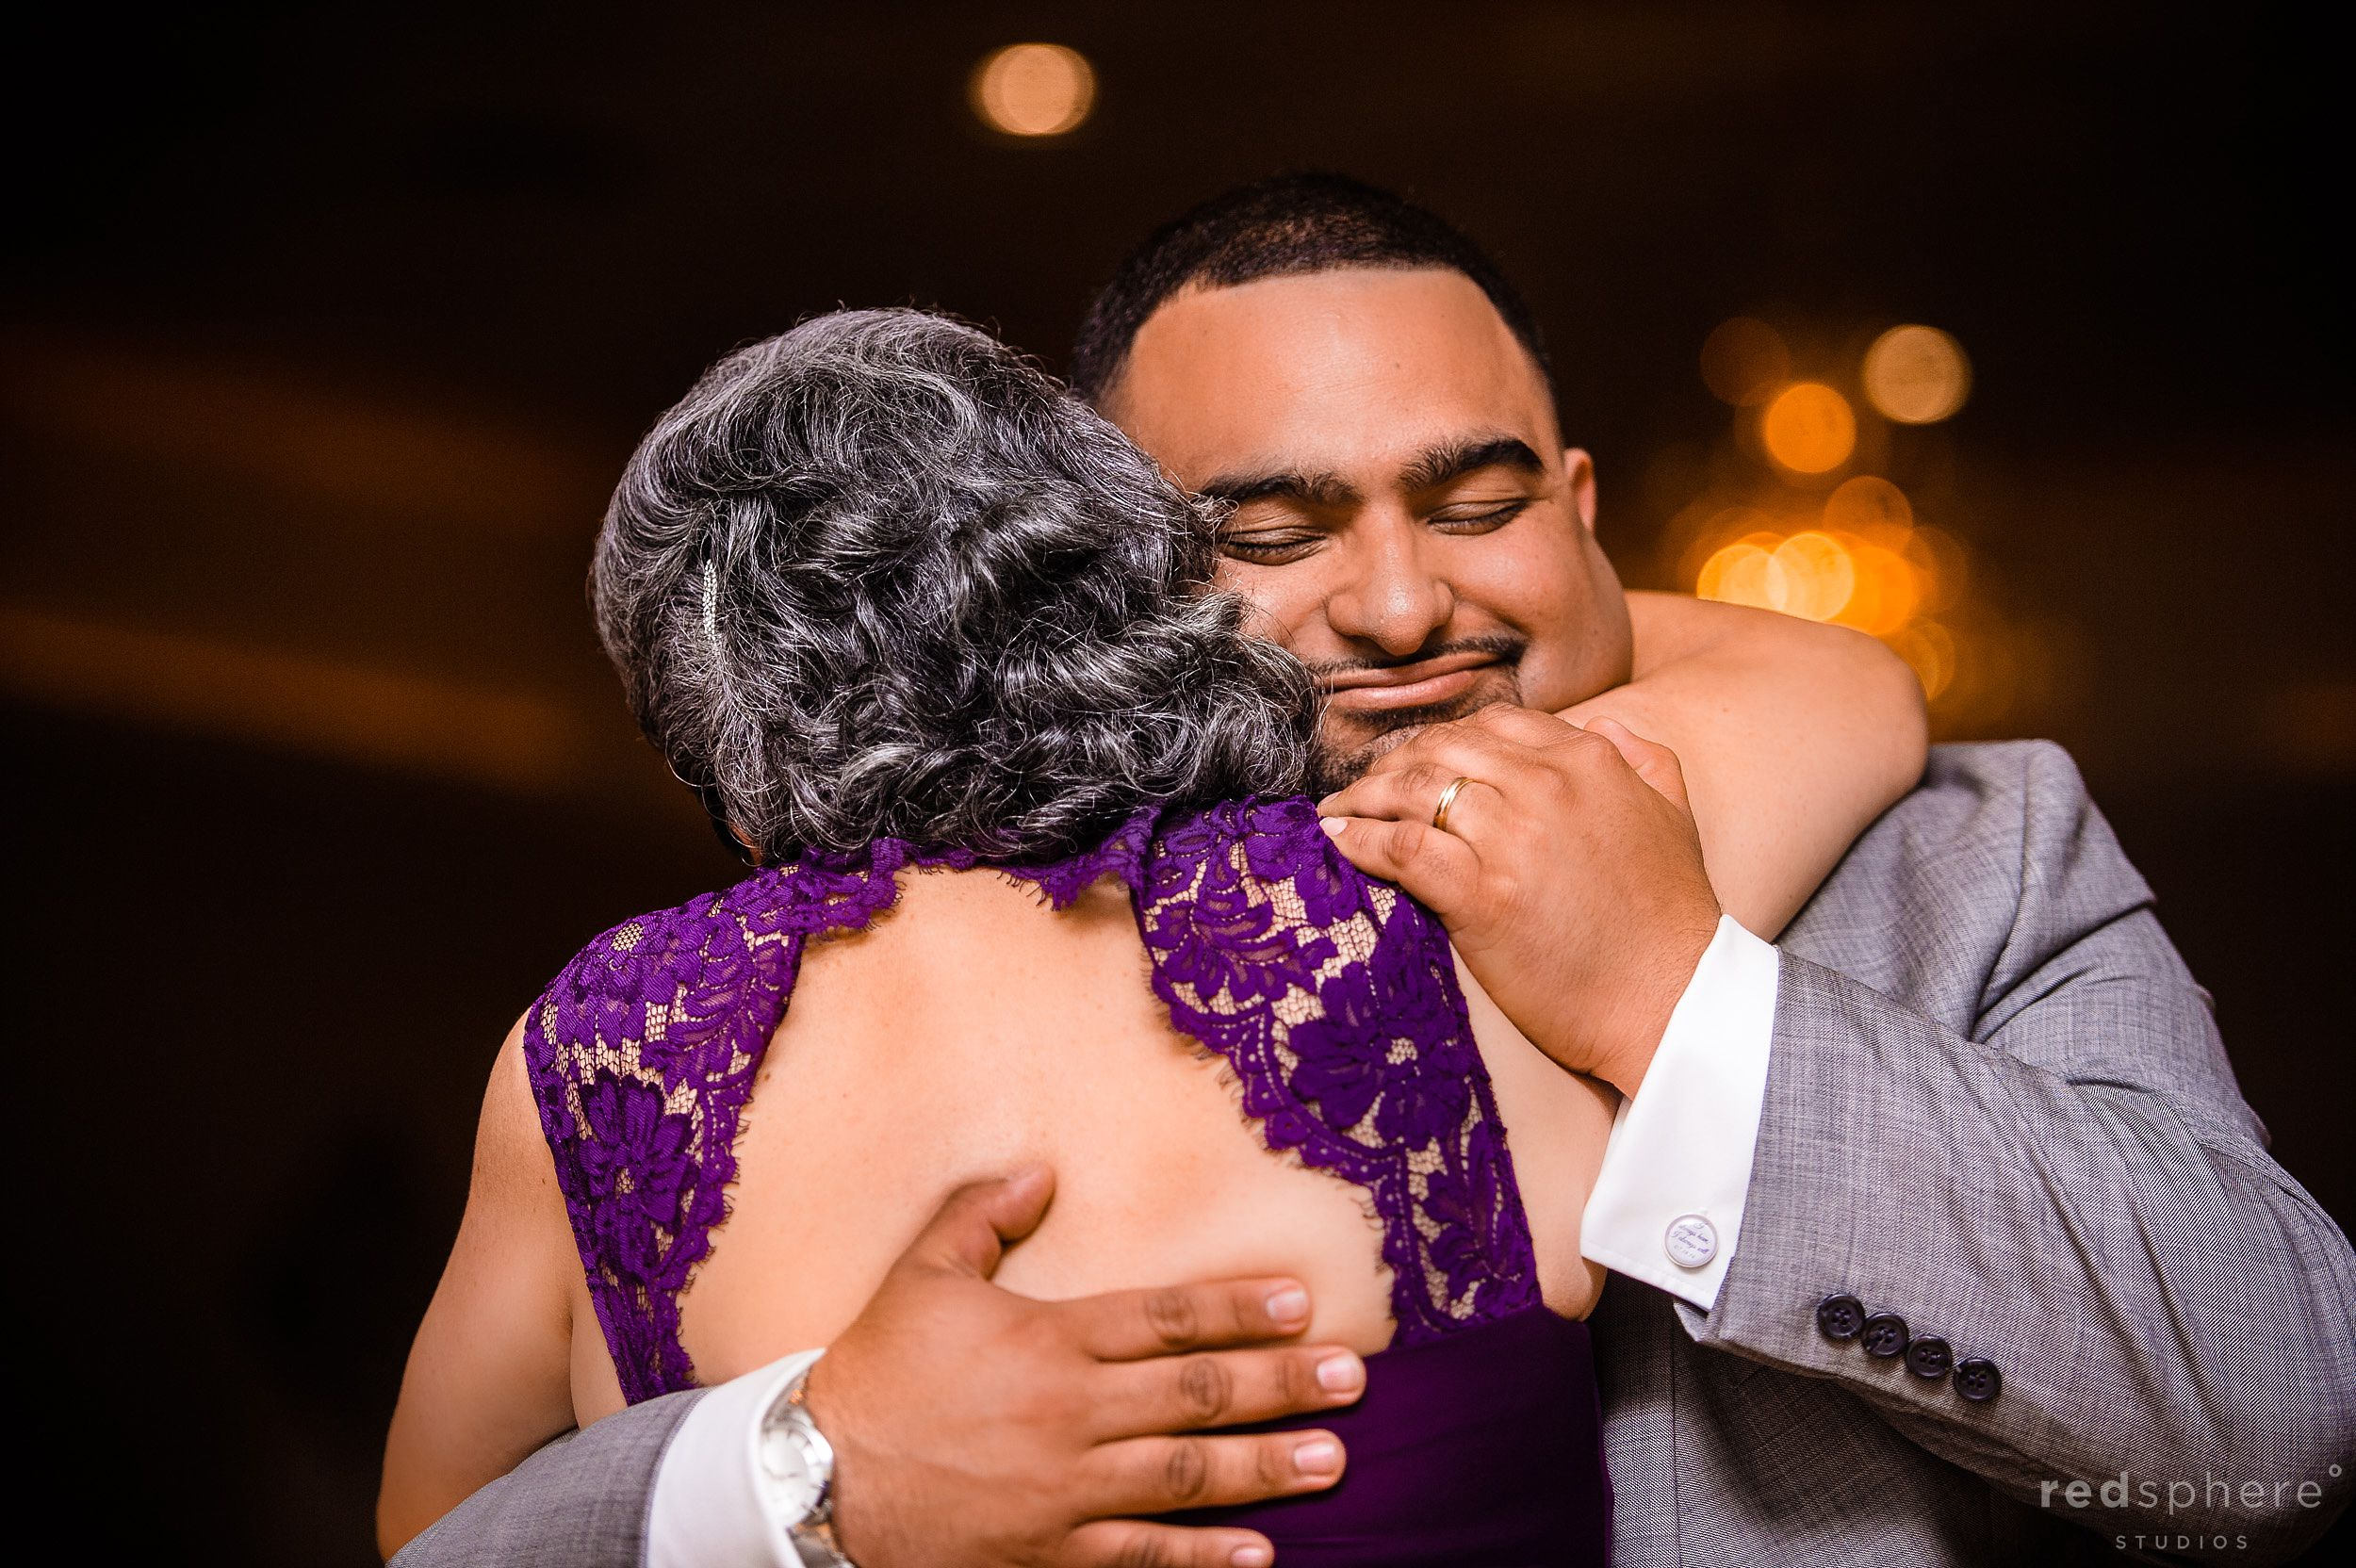 Groom Shares a hug With Family Member